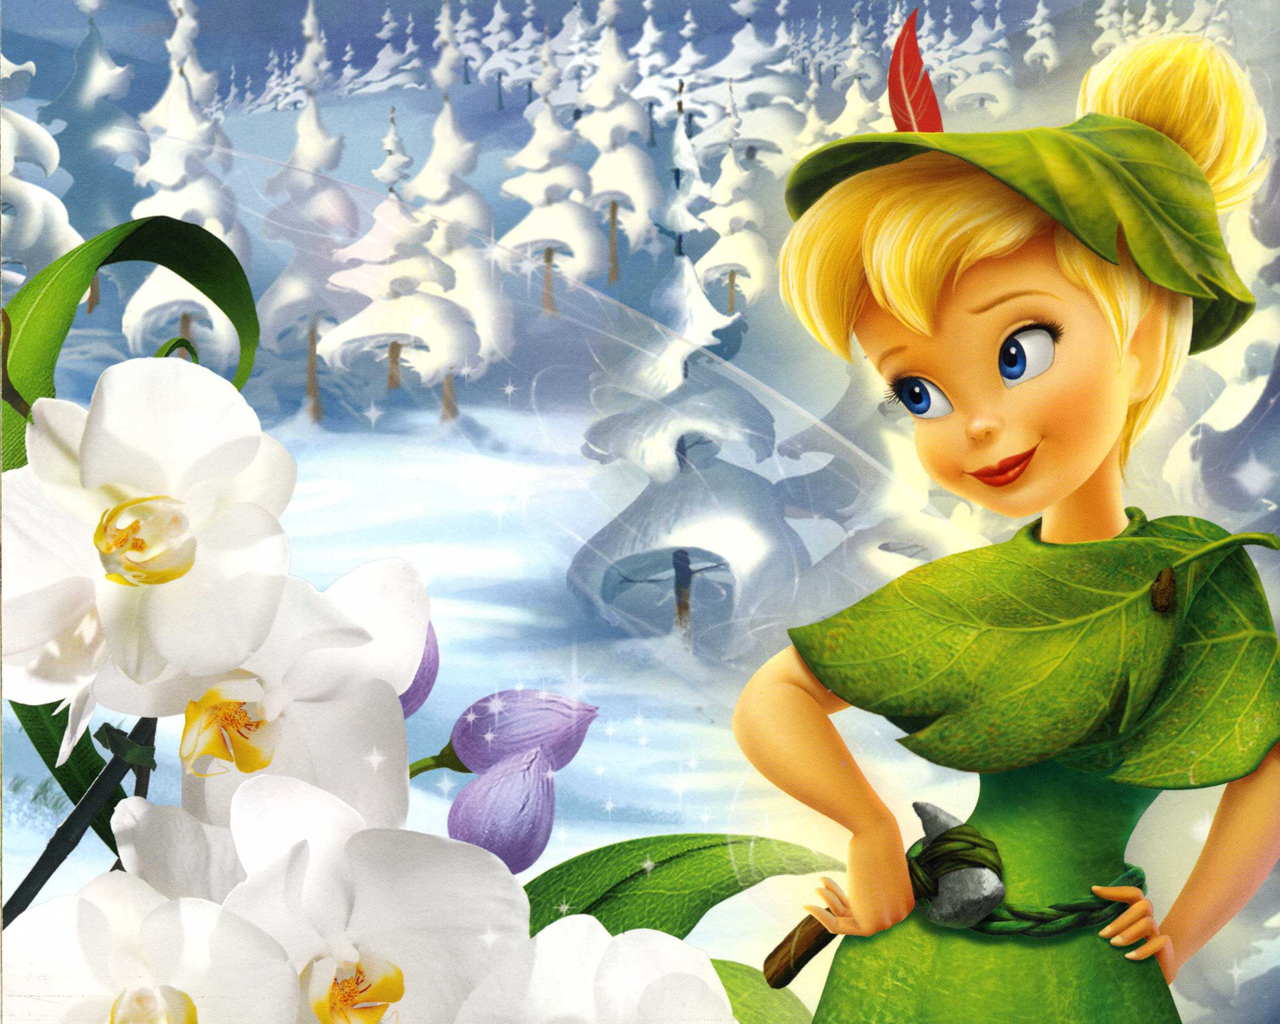 Free Download Tinkerbell Wallpaper 1280x1024 For Your